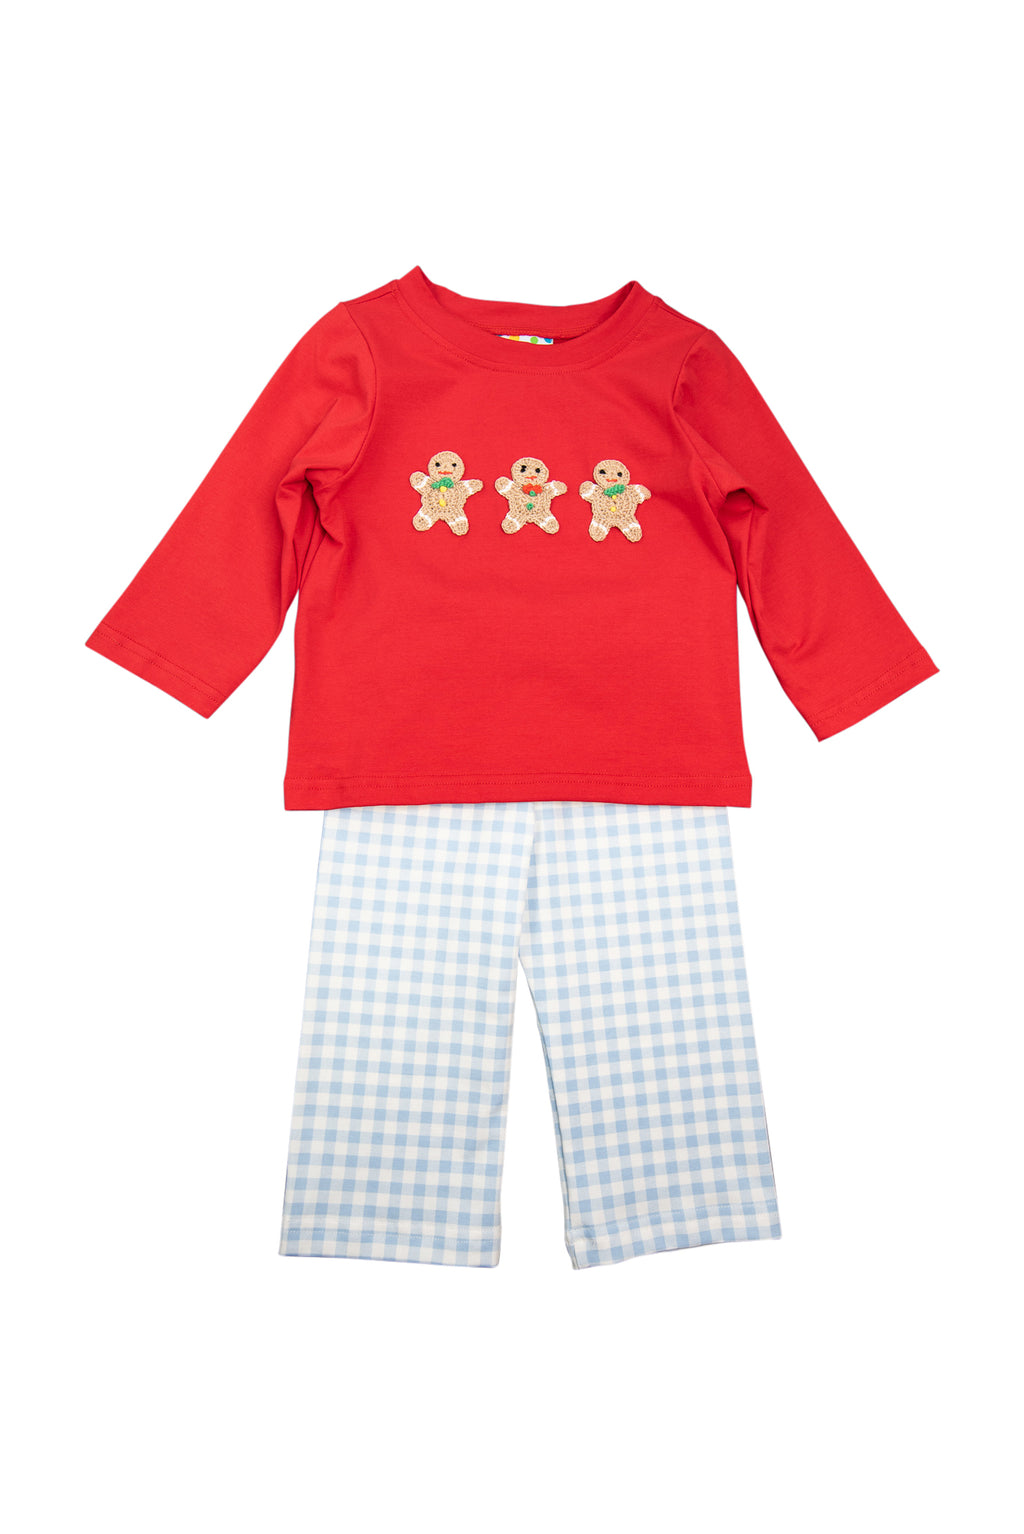 Boys Crocheted Gingerbread Pant Set